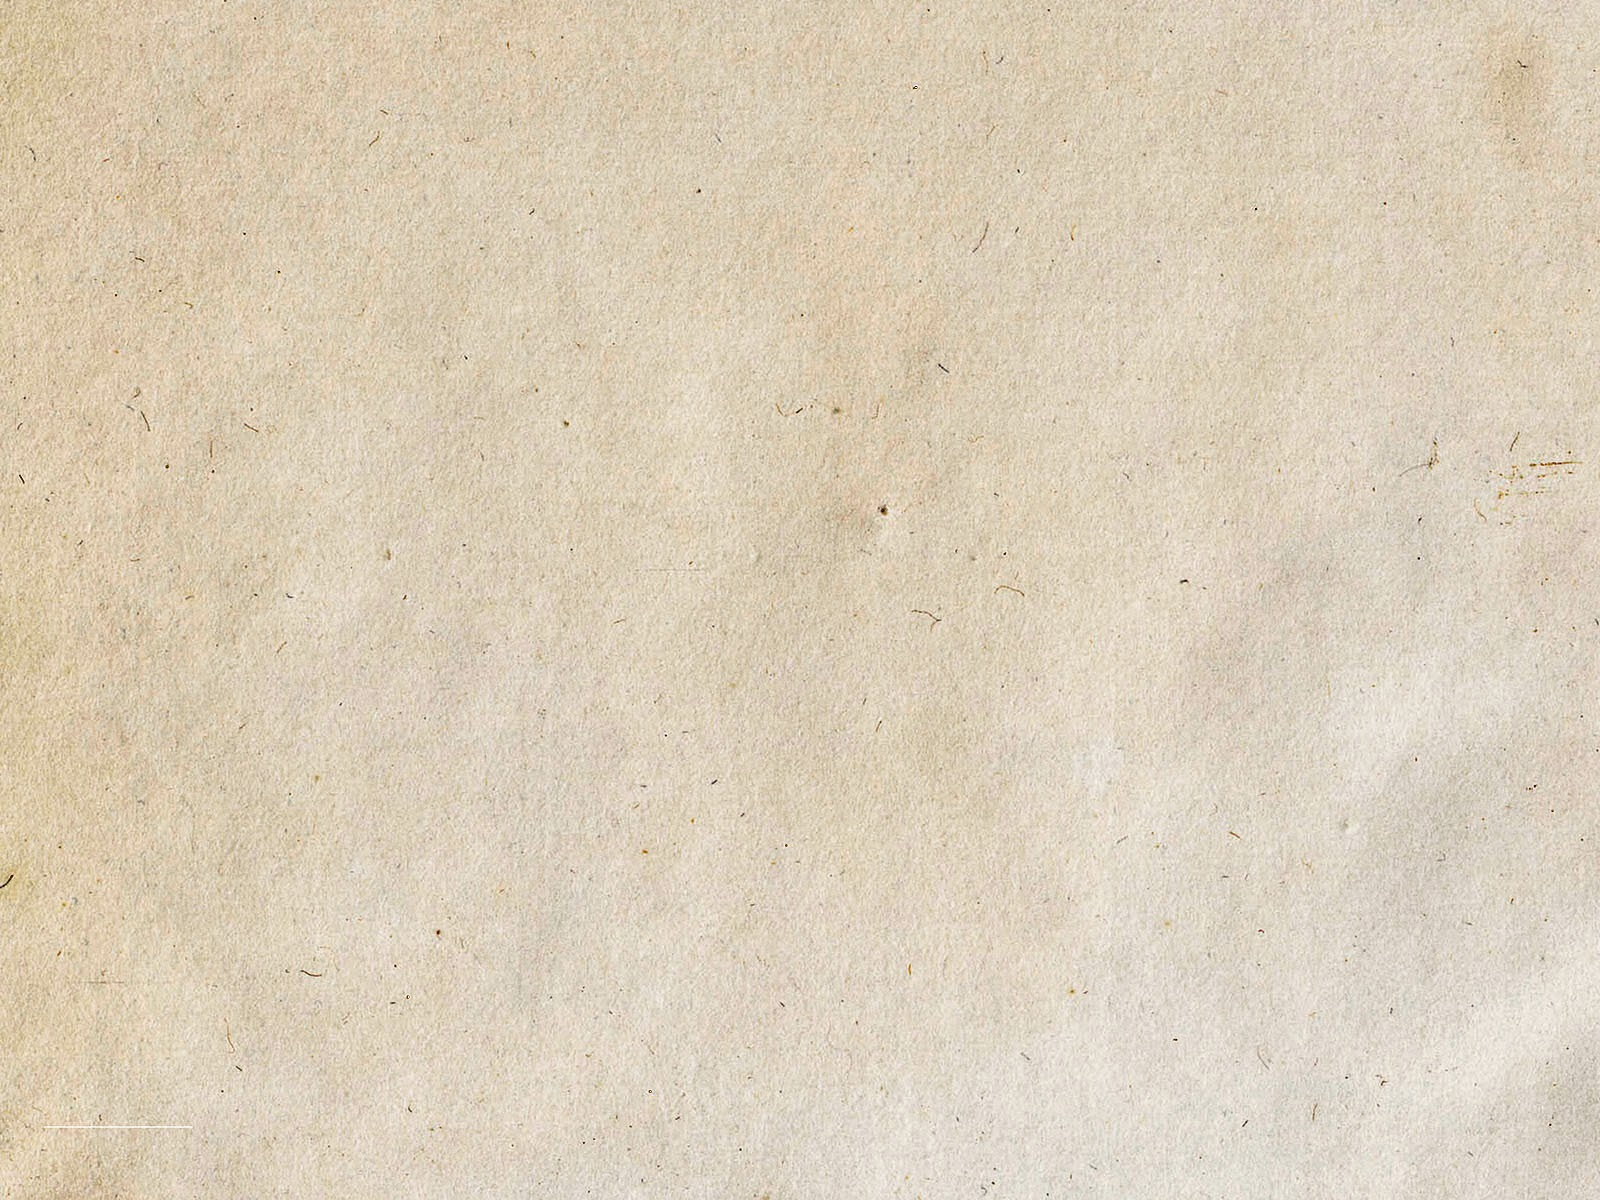 Kraft Paper Texture Maps Texturise Free Seamless Textures With Maps